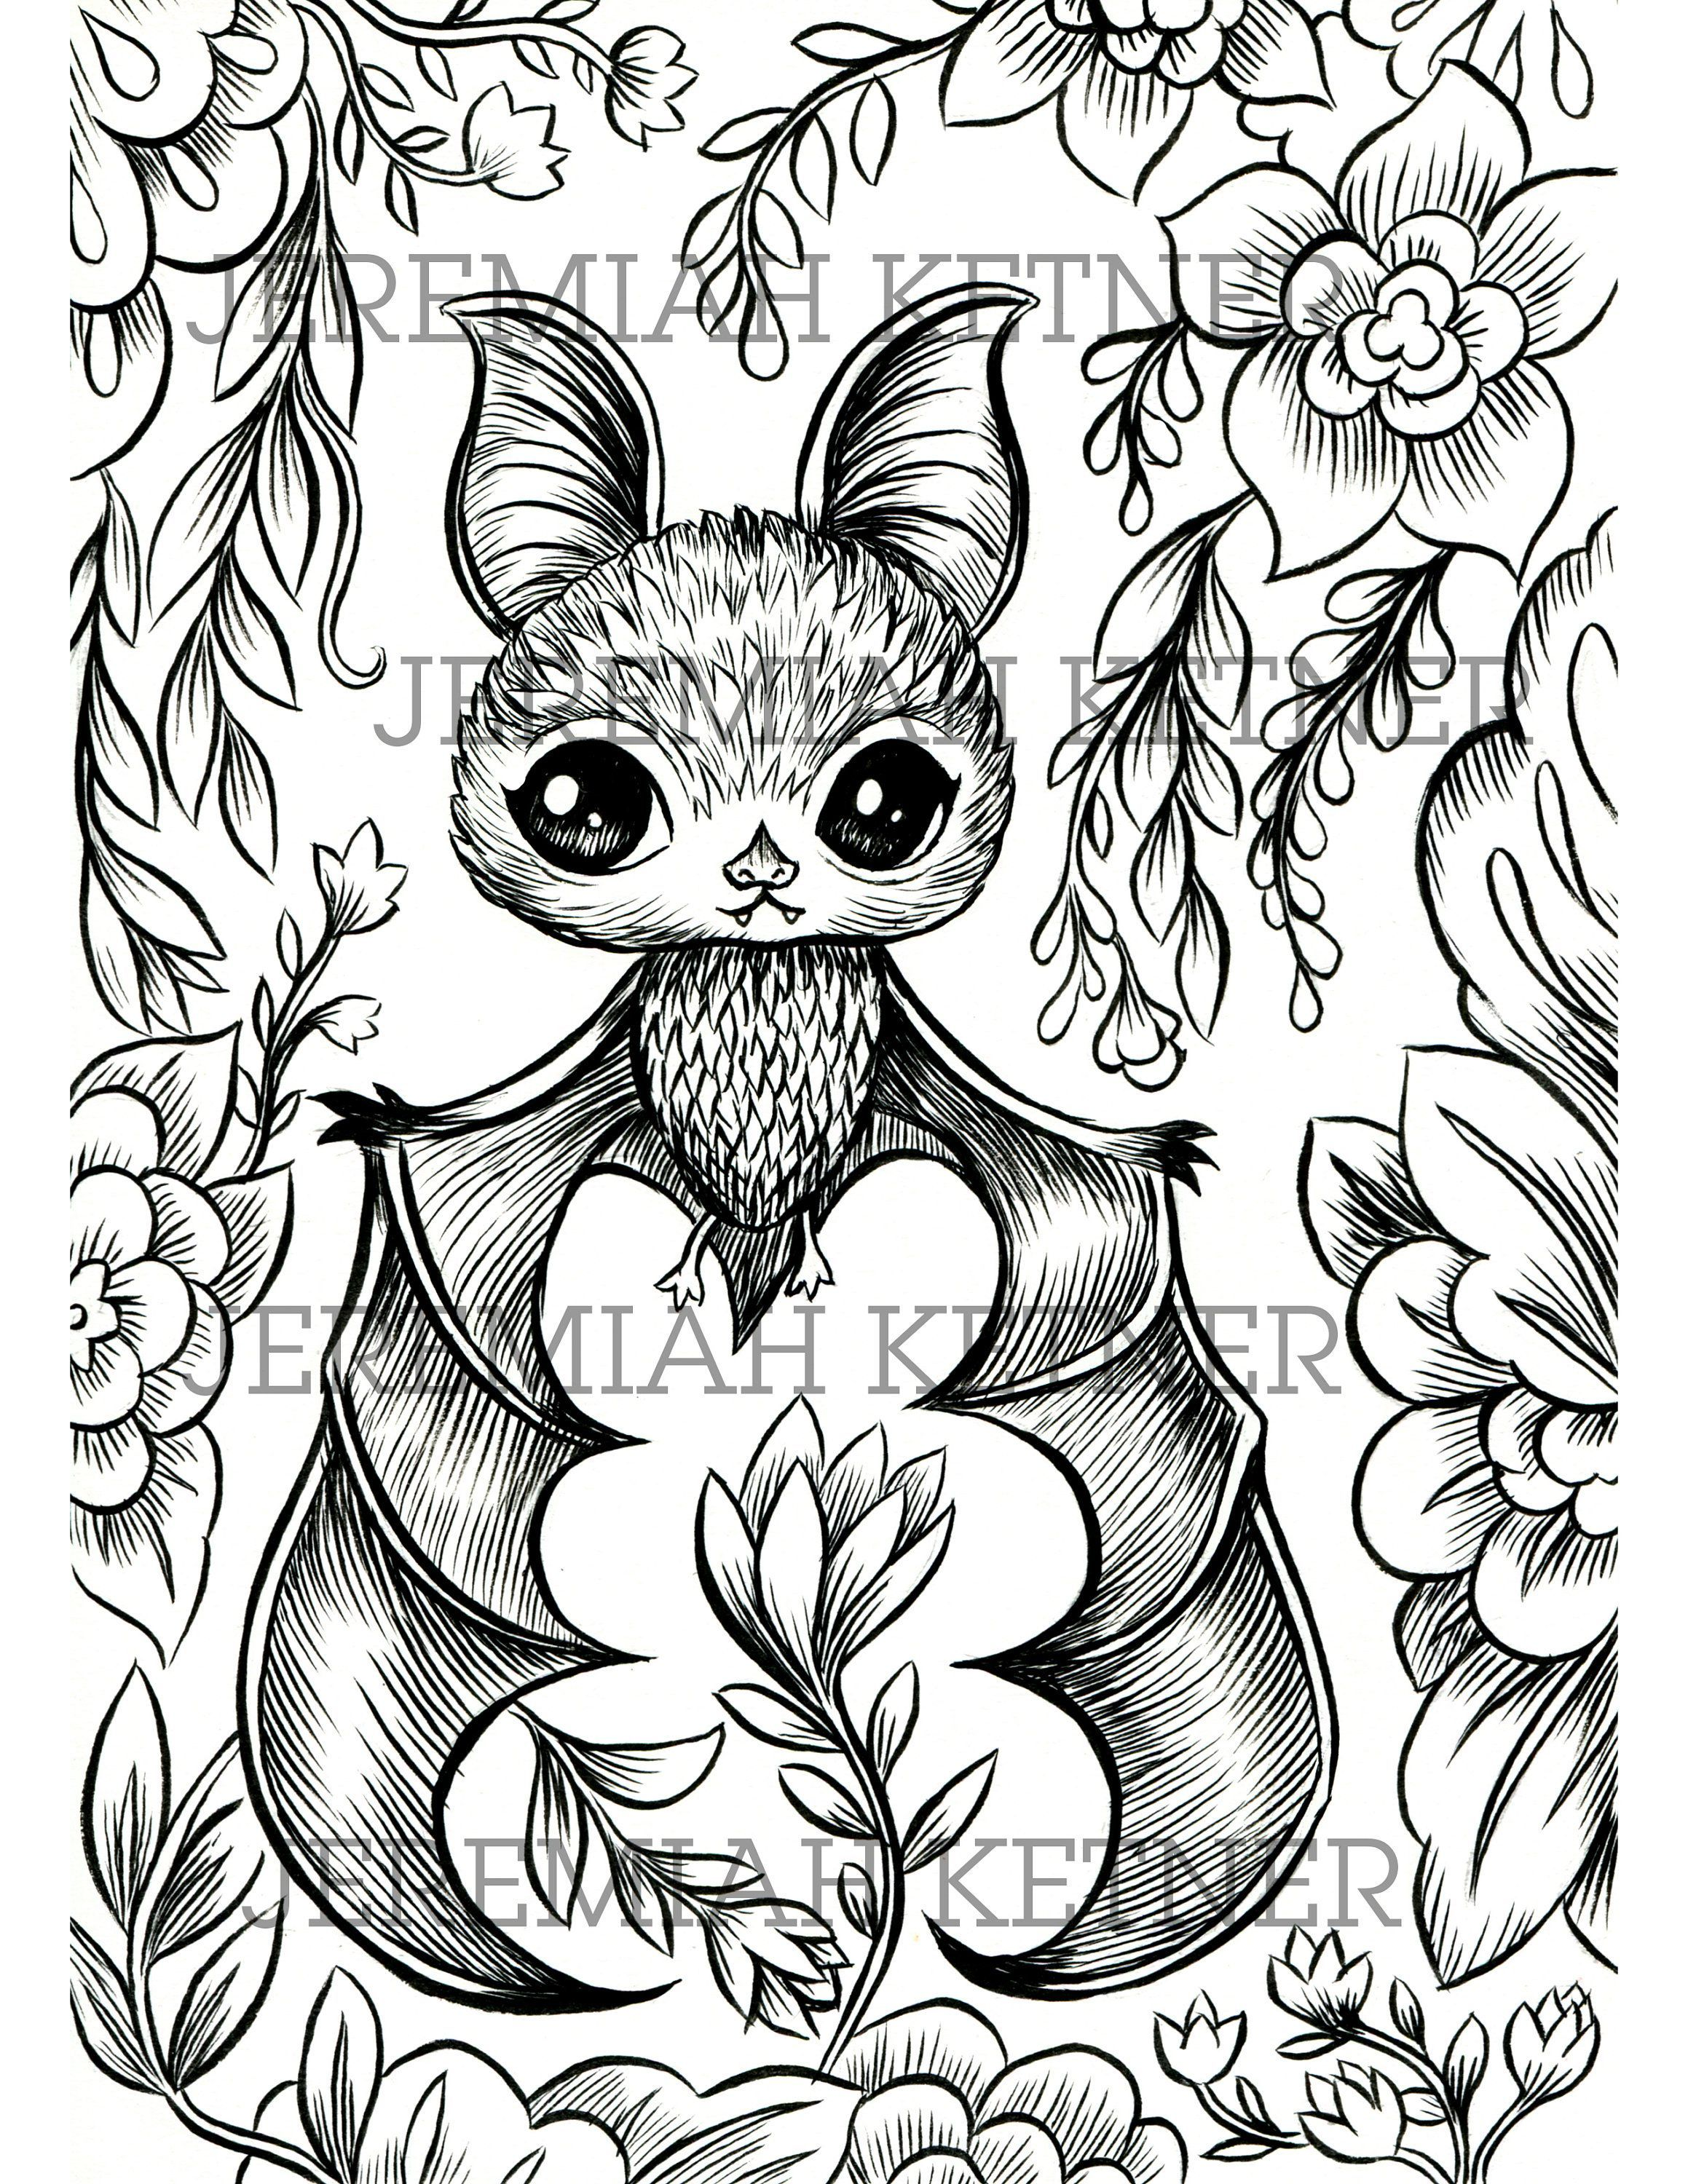 Pin By Alice Gee On Bright Colors Bat Coloring Pages Pokemon Coloring Pages Cute Coloring Pages